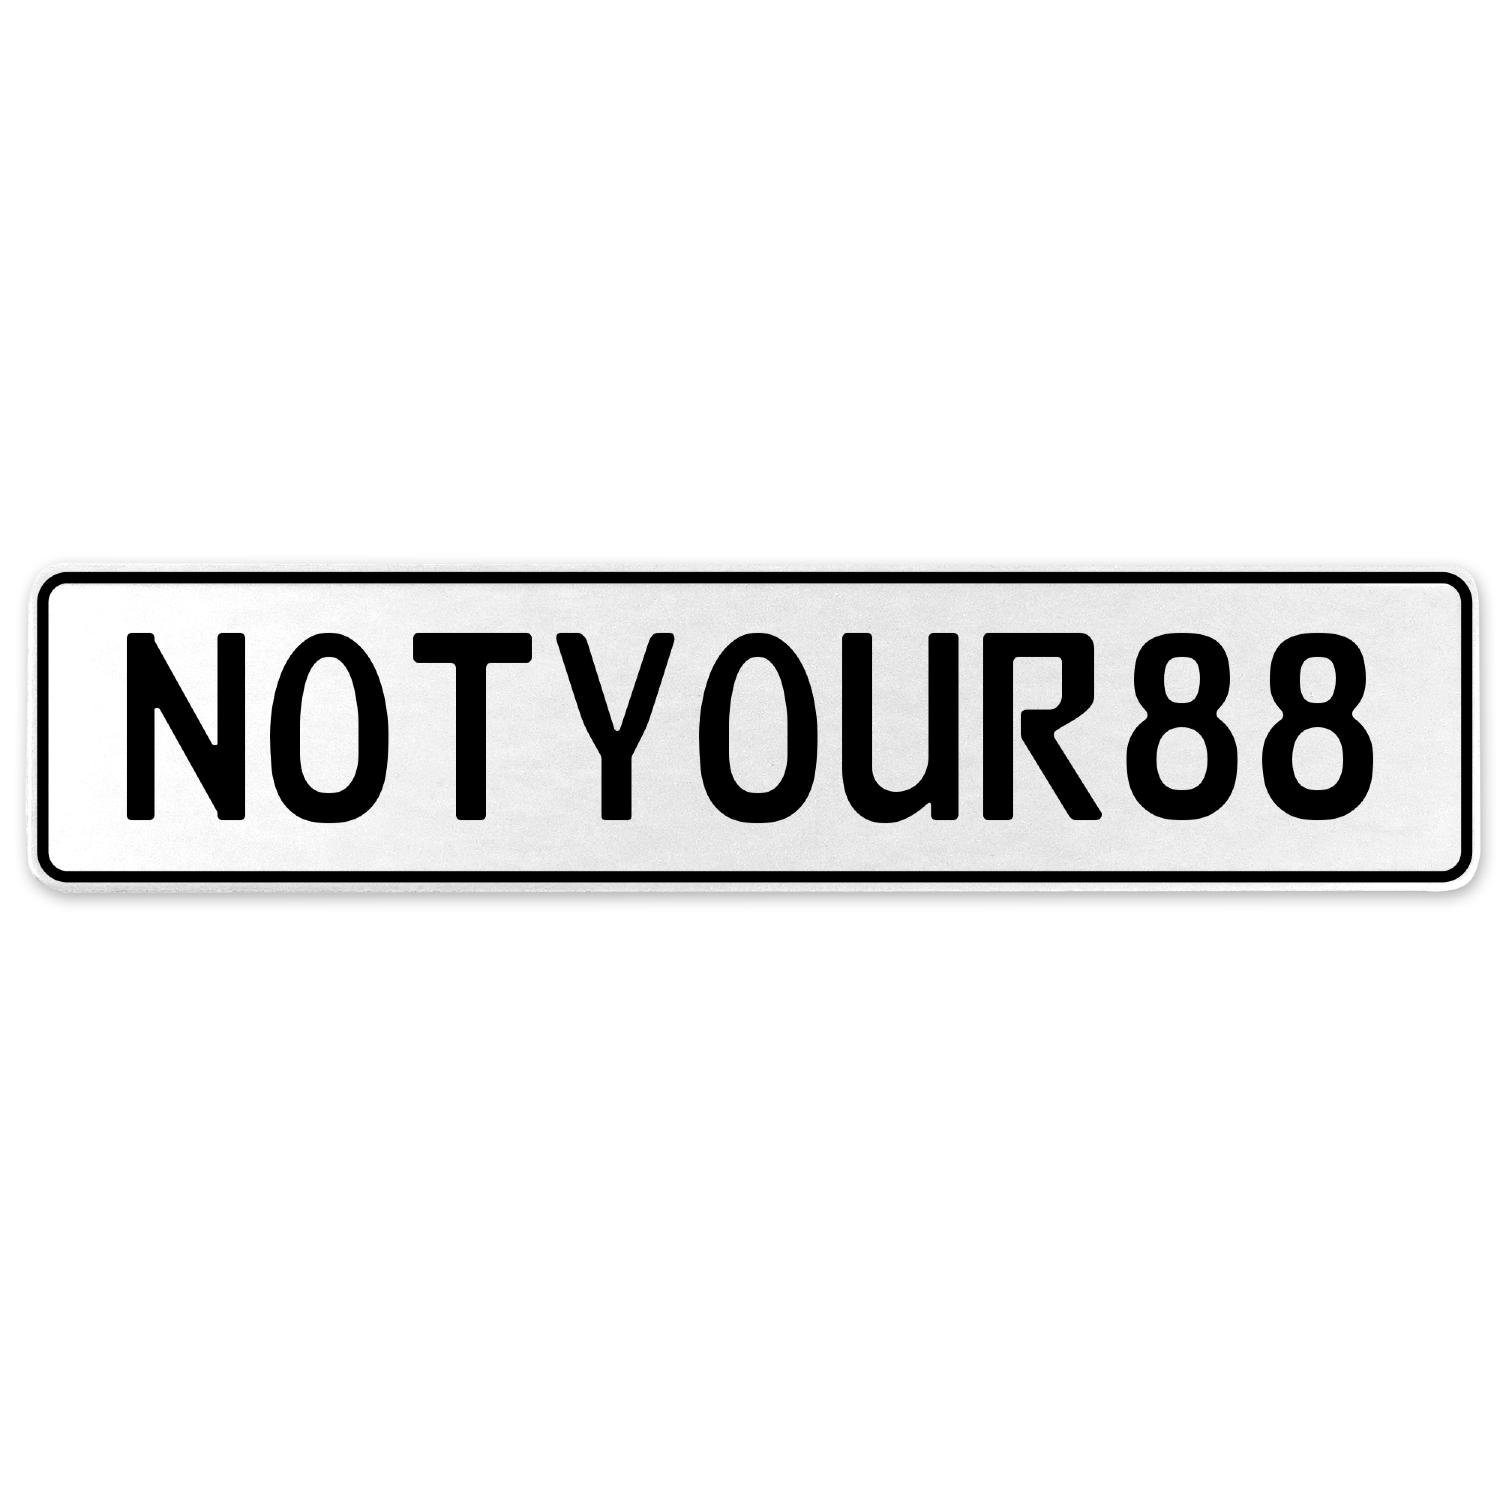 Vintage Parts 555477 NOTYOUR88 White Stamped Aluminum European License Plate